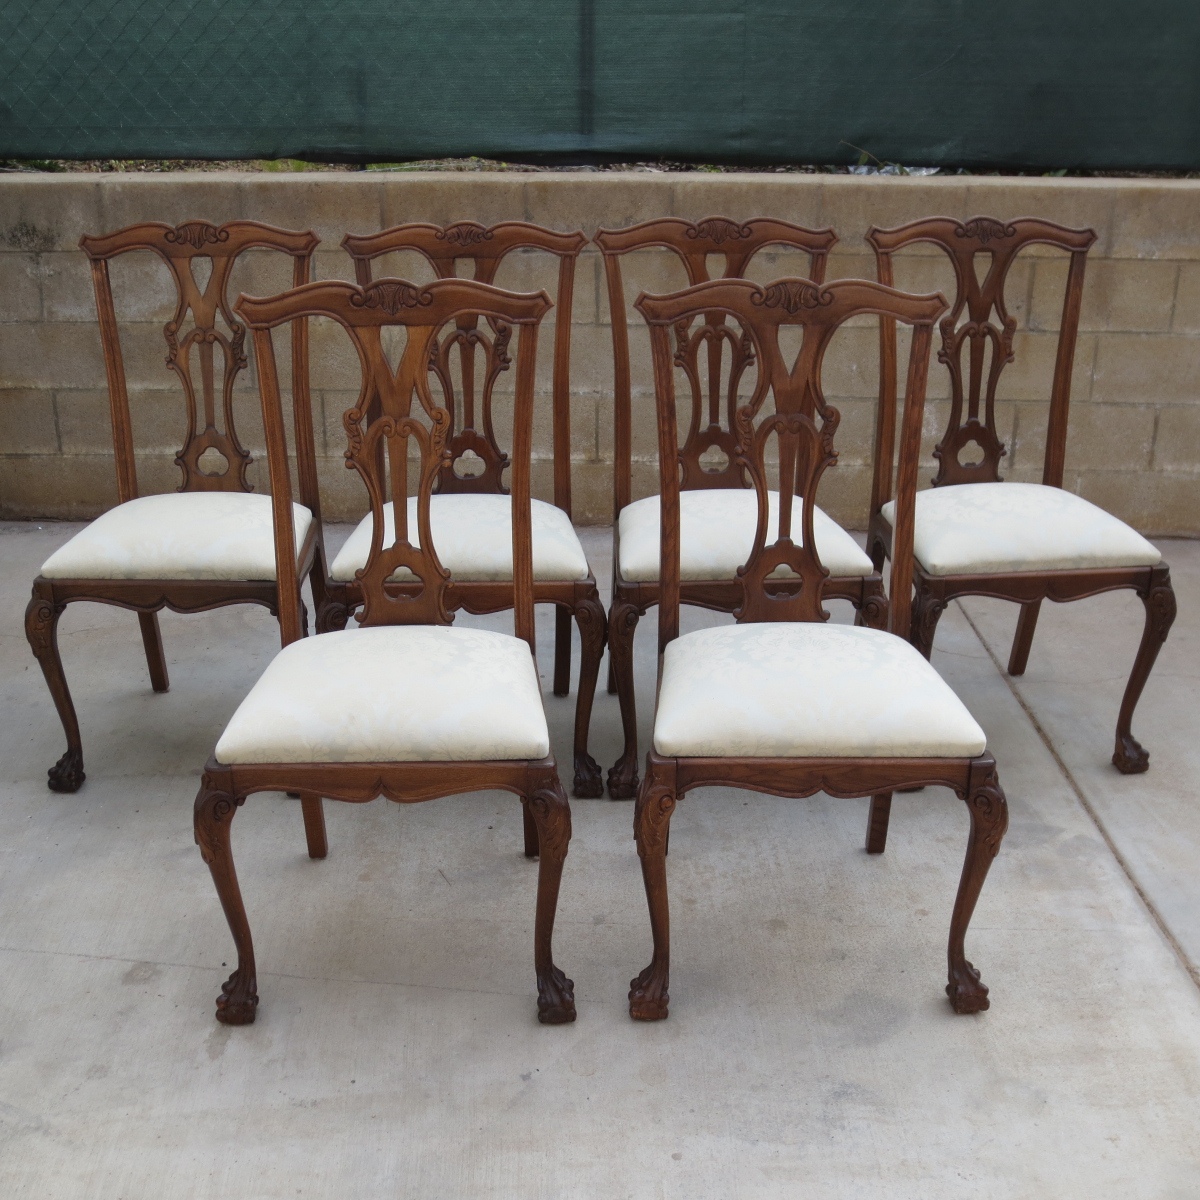 Vintage Dining Chair Choosing Antique Dining Chairs For Your House